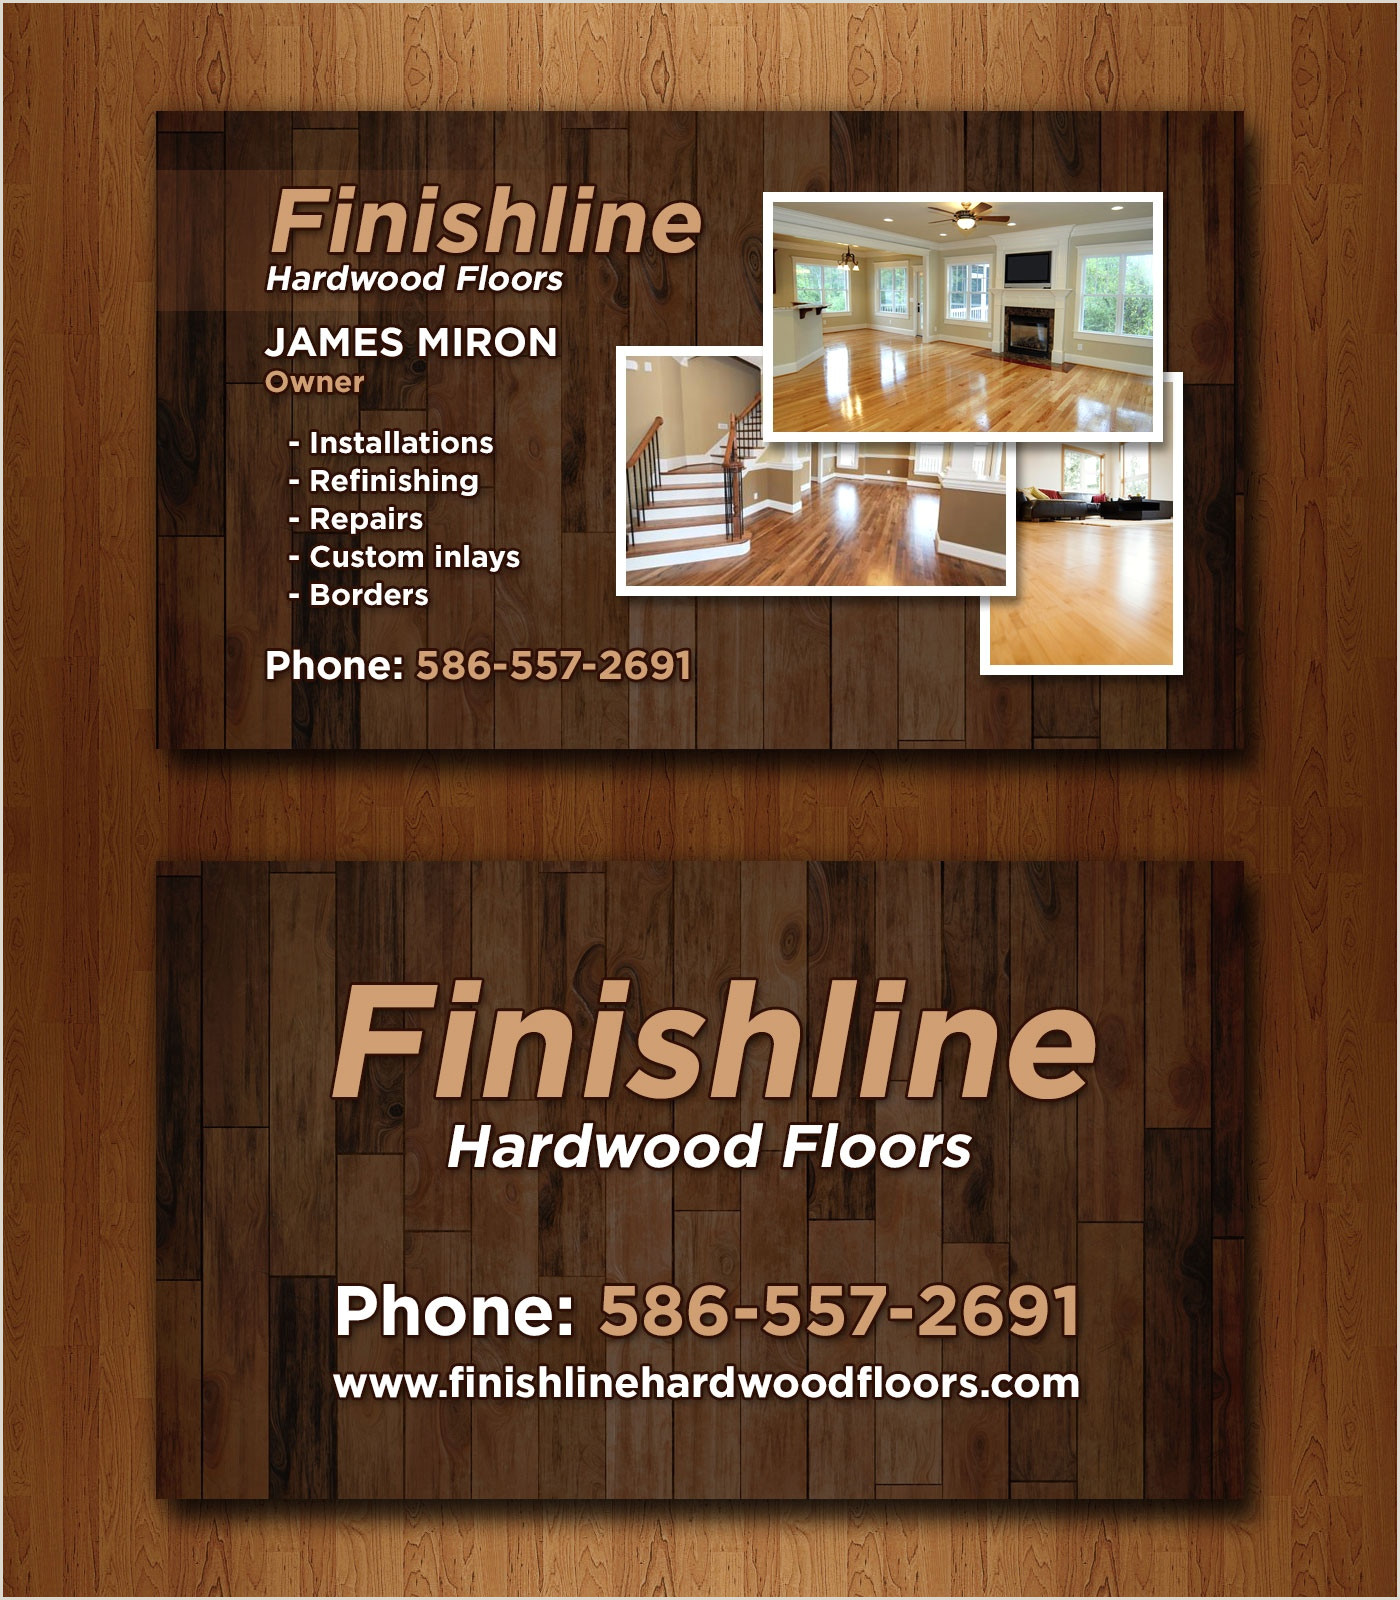 Template For Business Cards 14 Popular Hardwood Flooring Business Card Template